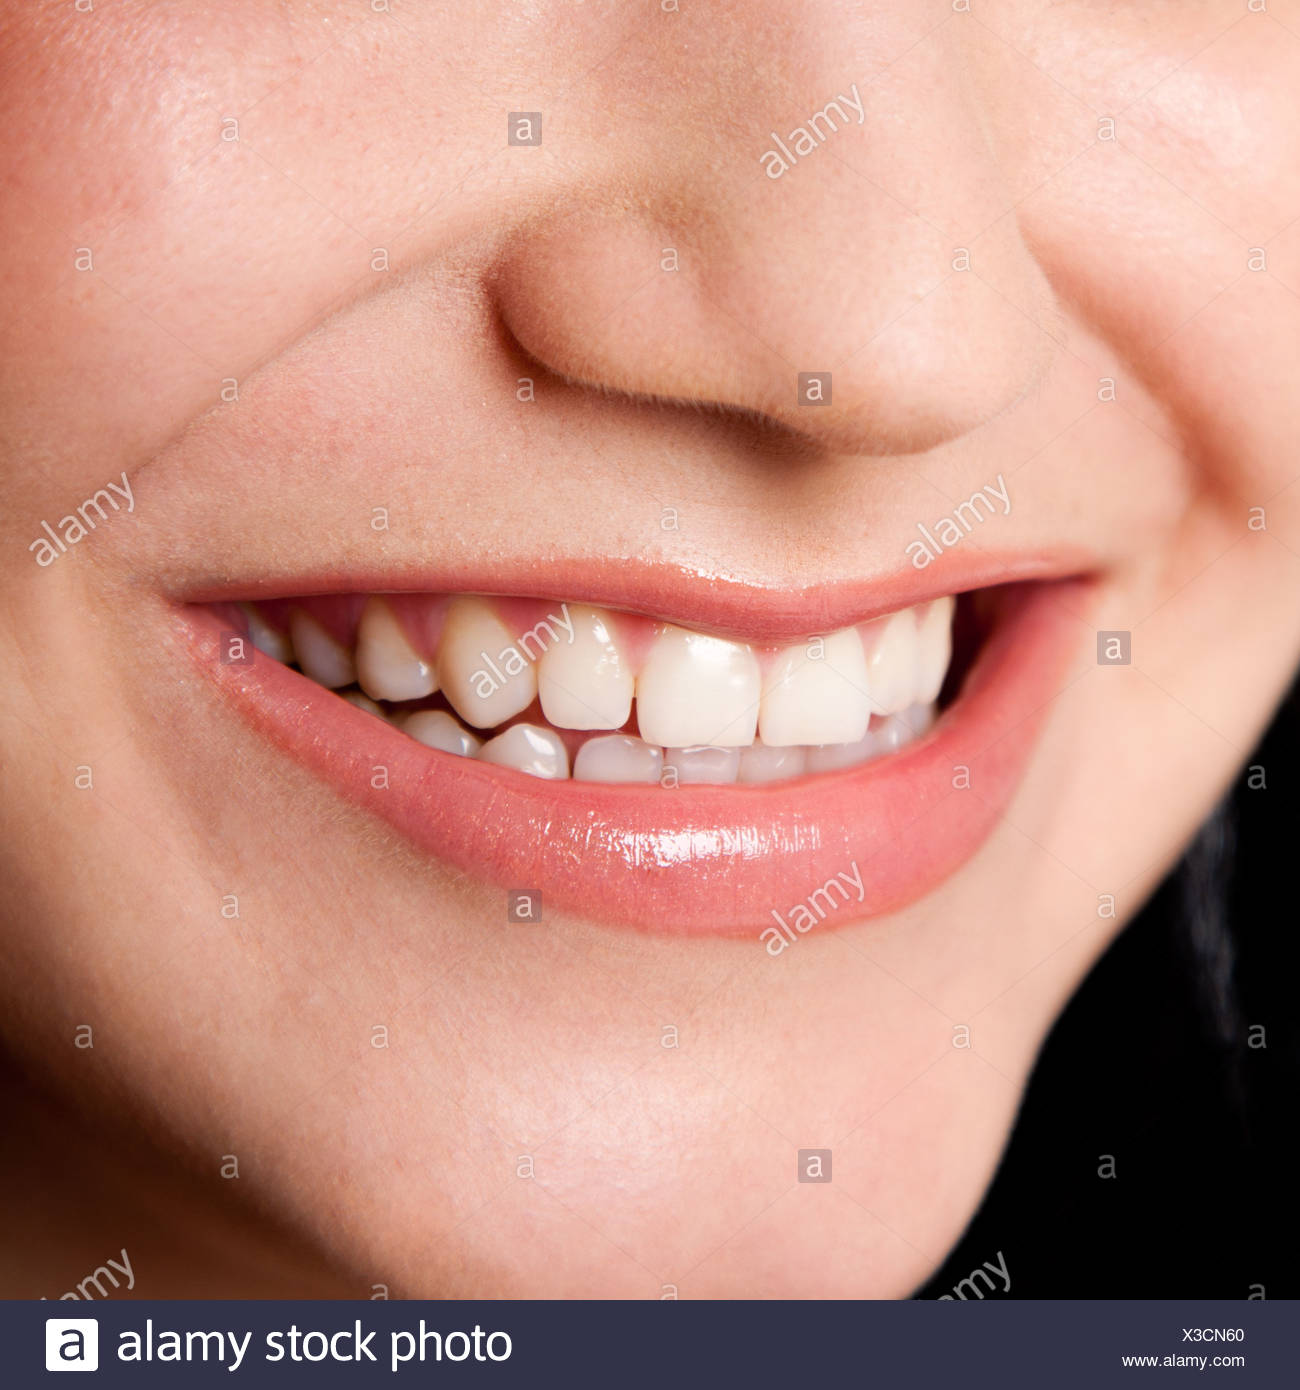 Lips And Teeth Stock Photos & Lips And Teeth Stock Images ...